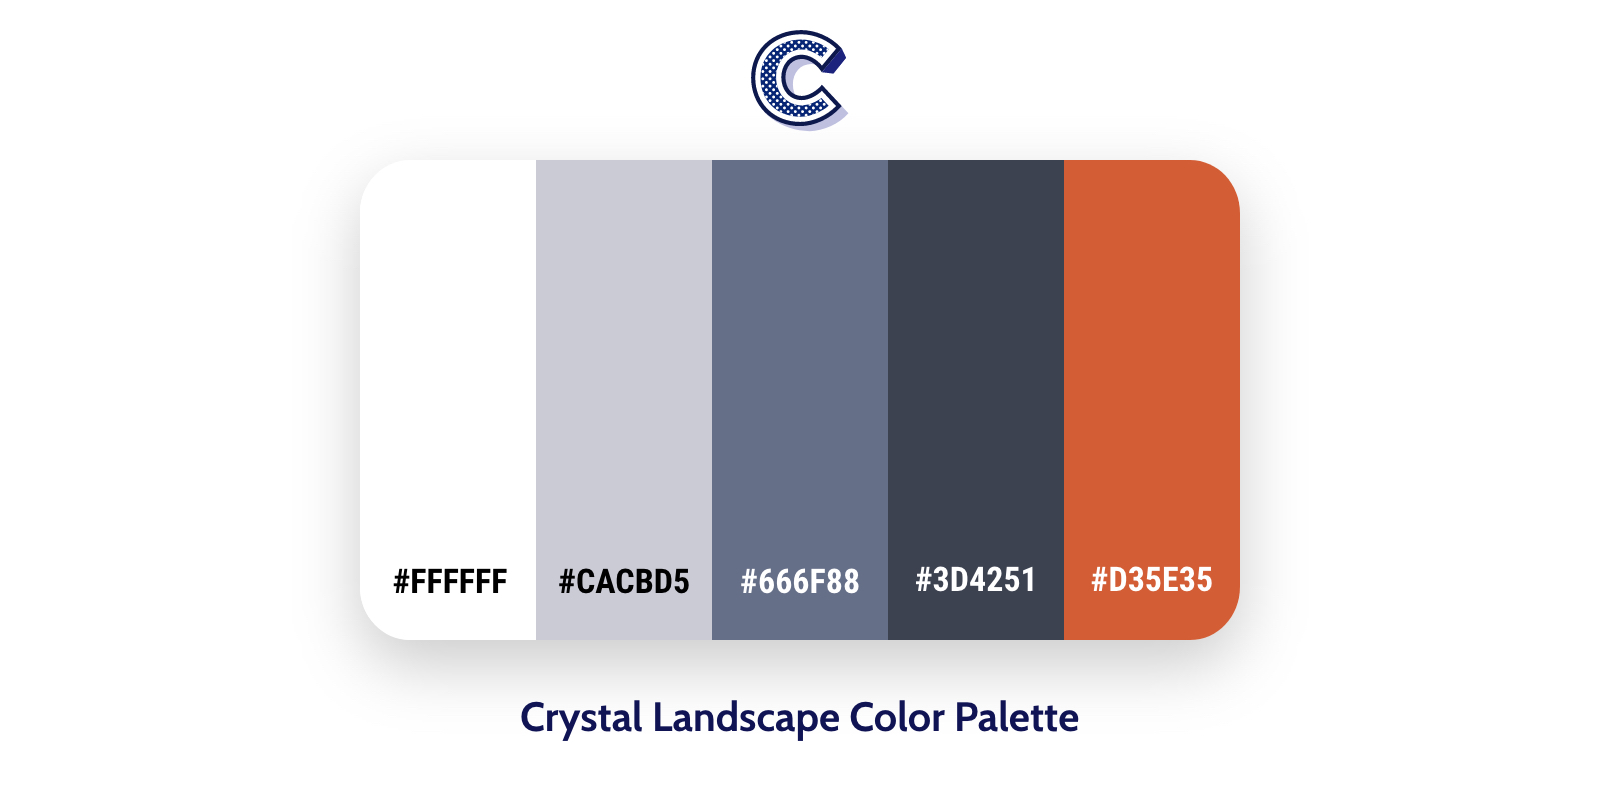 the featured image of crystal landscape color palette